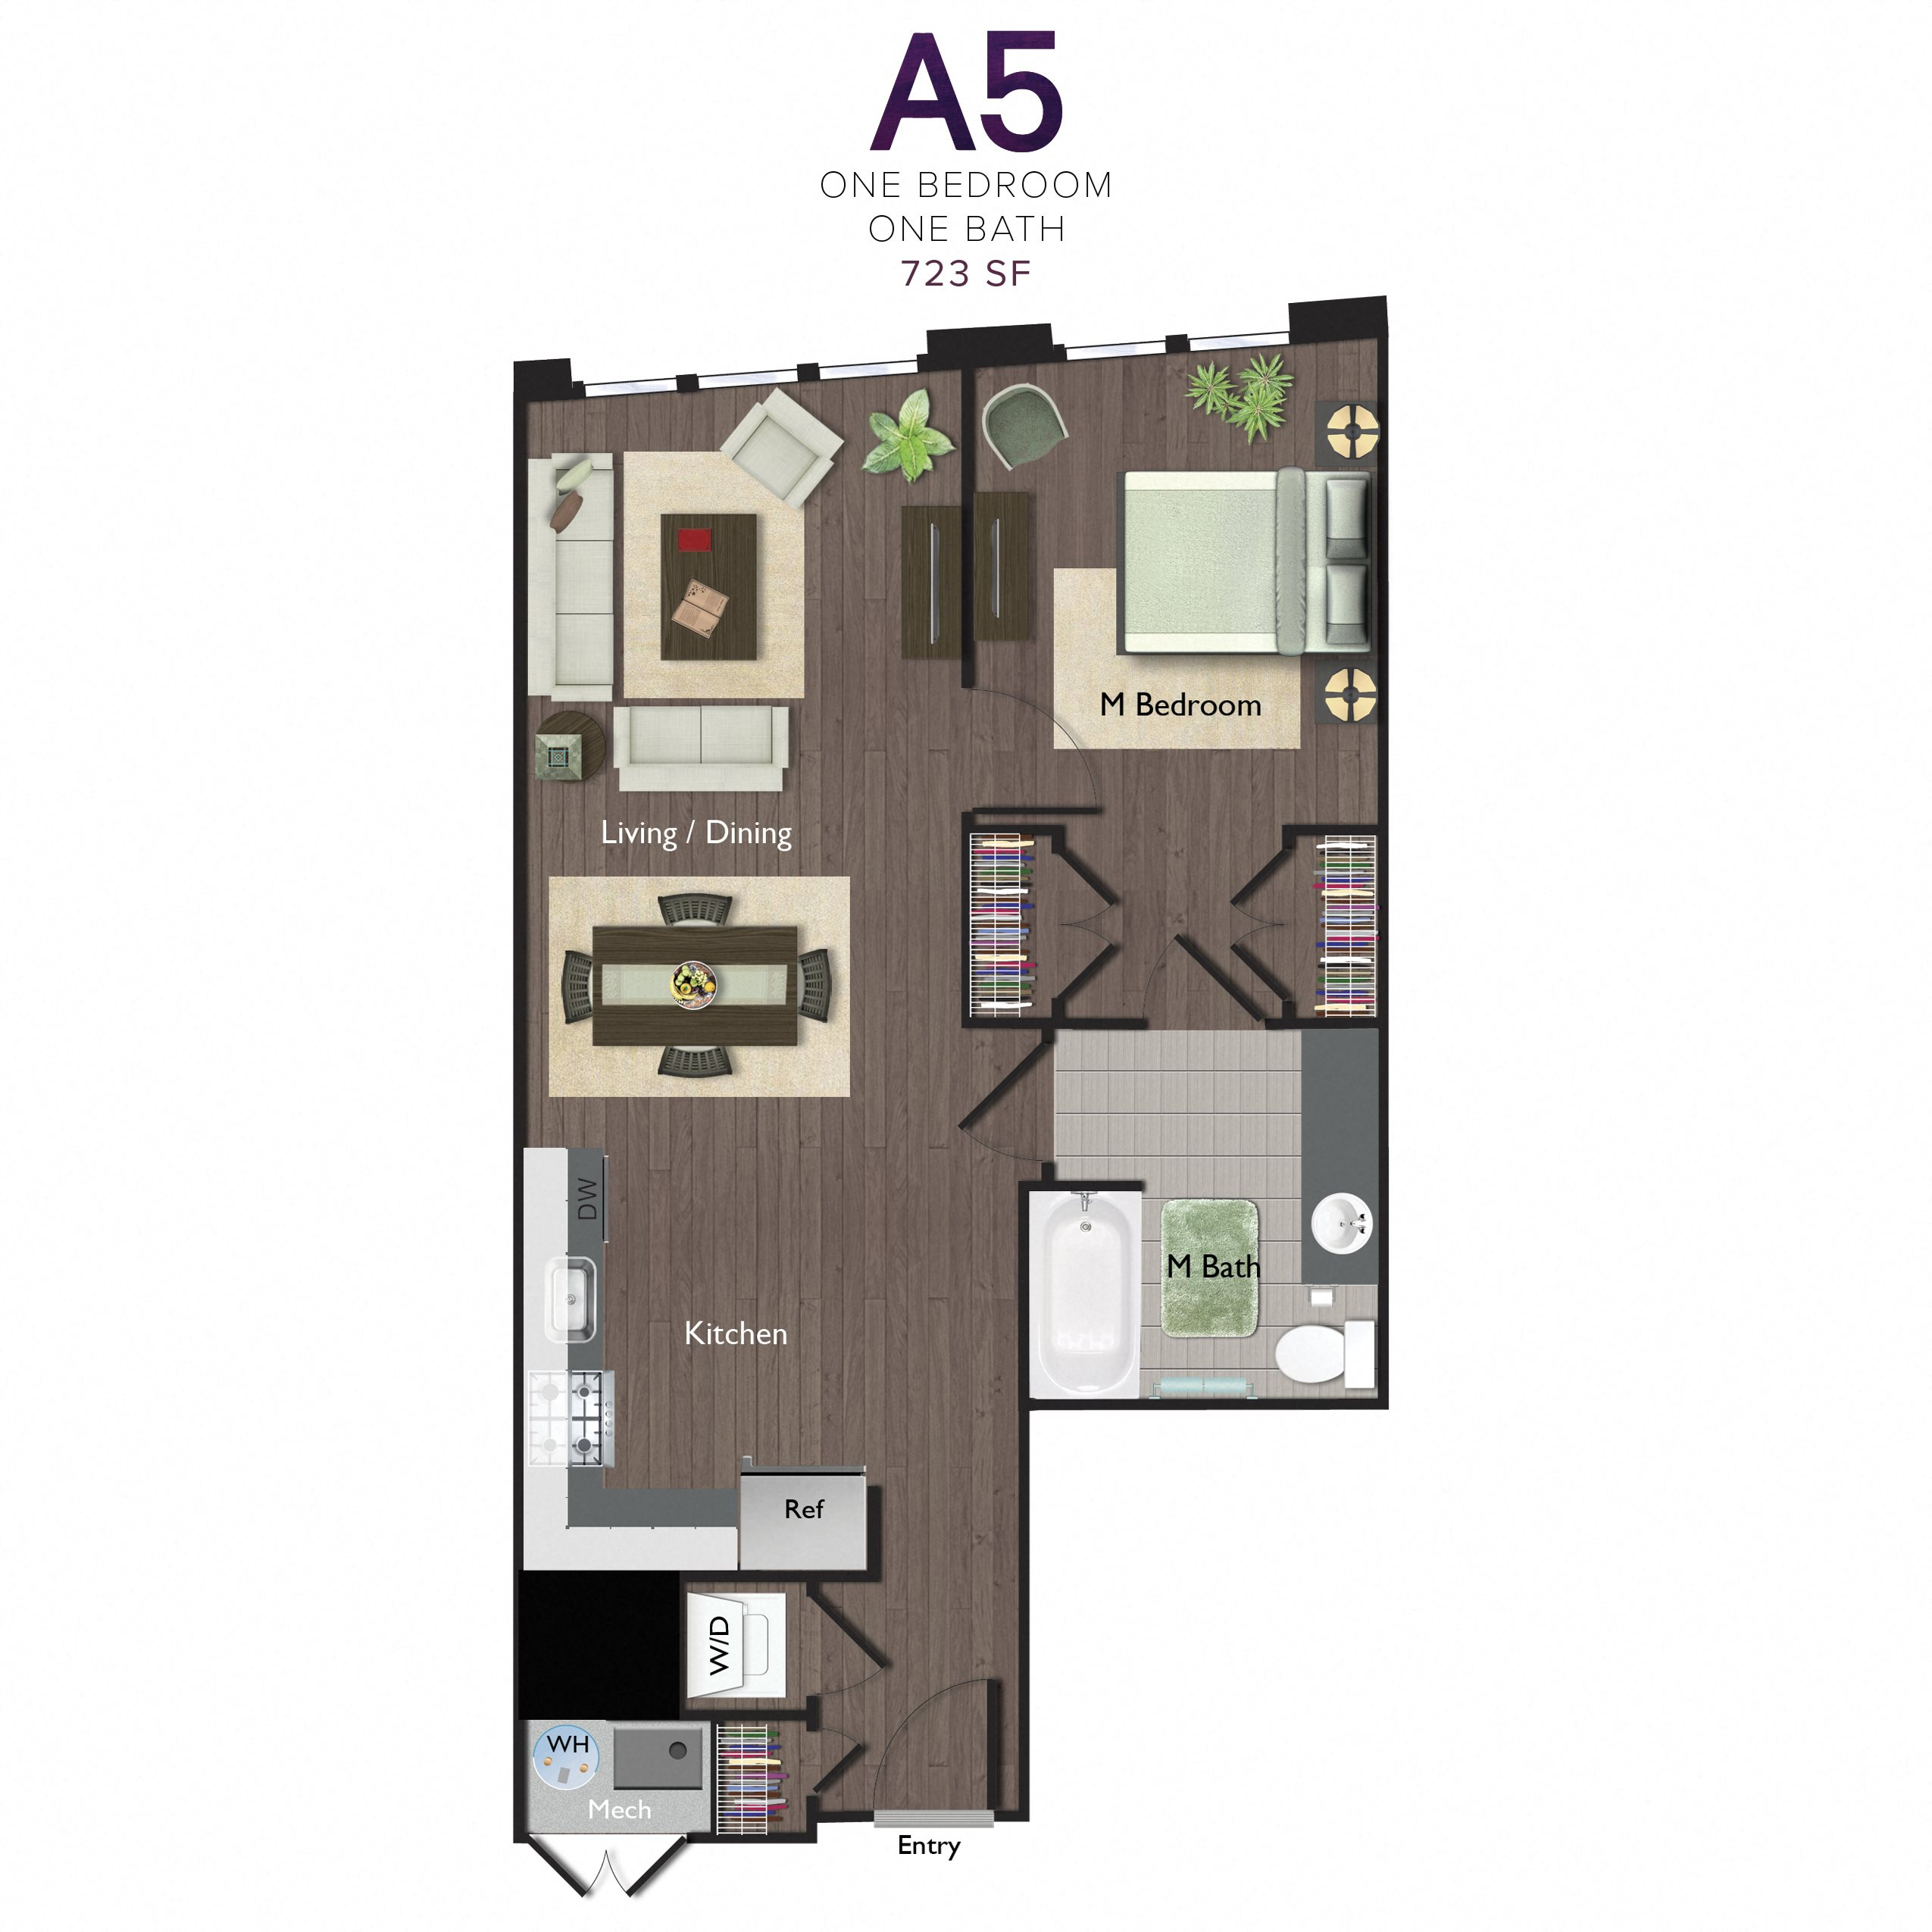 One Bedroom/One Bathroom (A05) Floor Plan 8